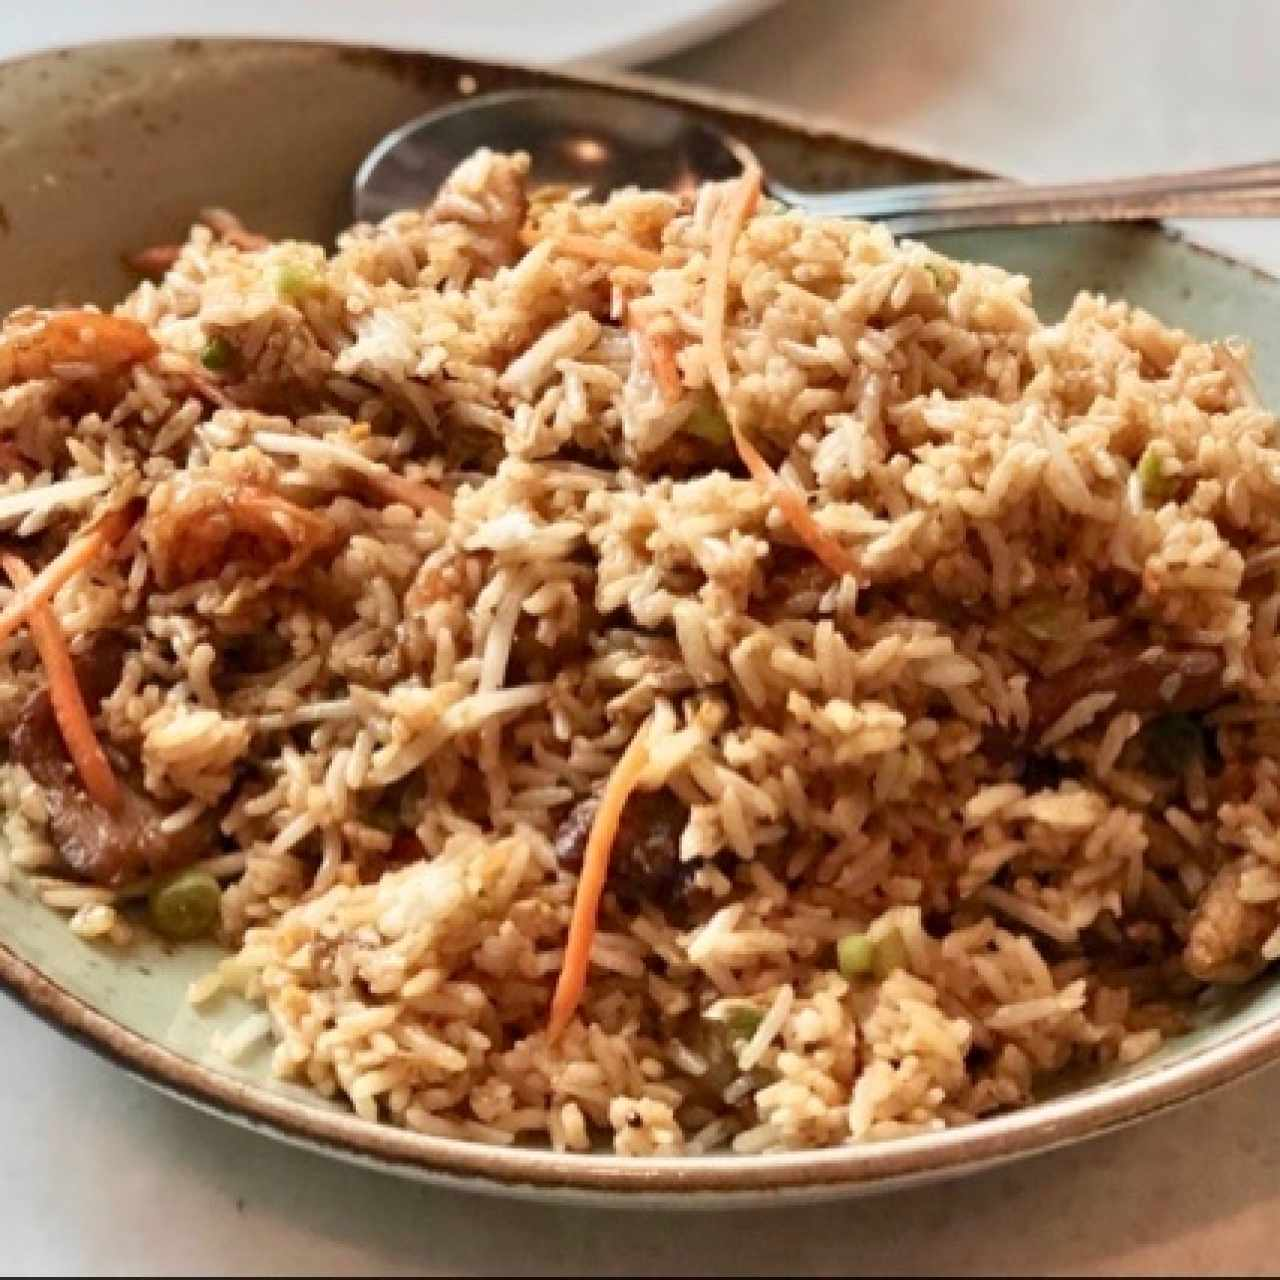 P.F. Chang's Fried Rice Mixto